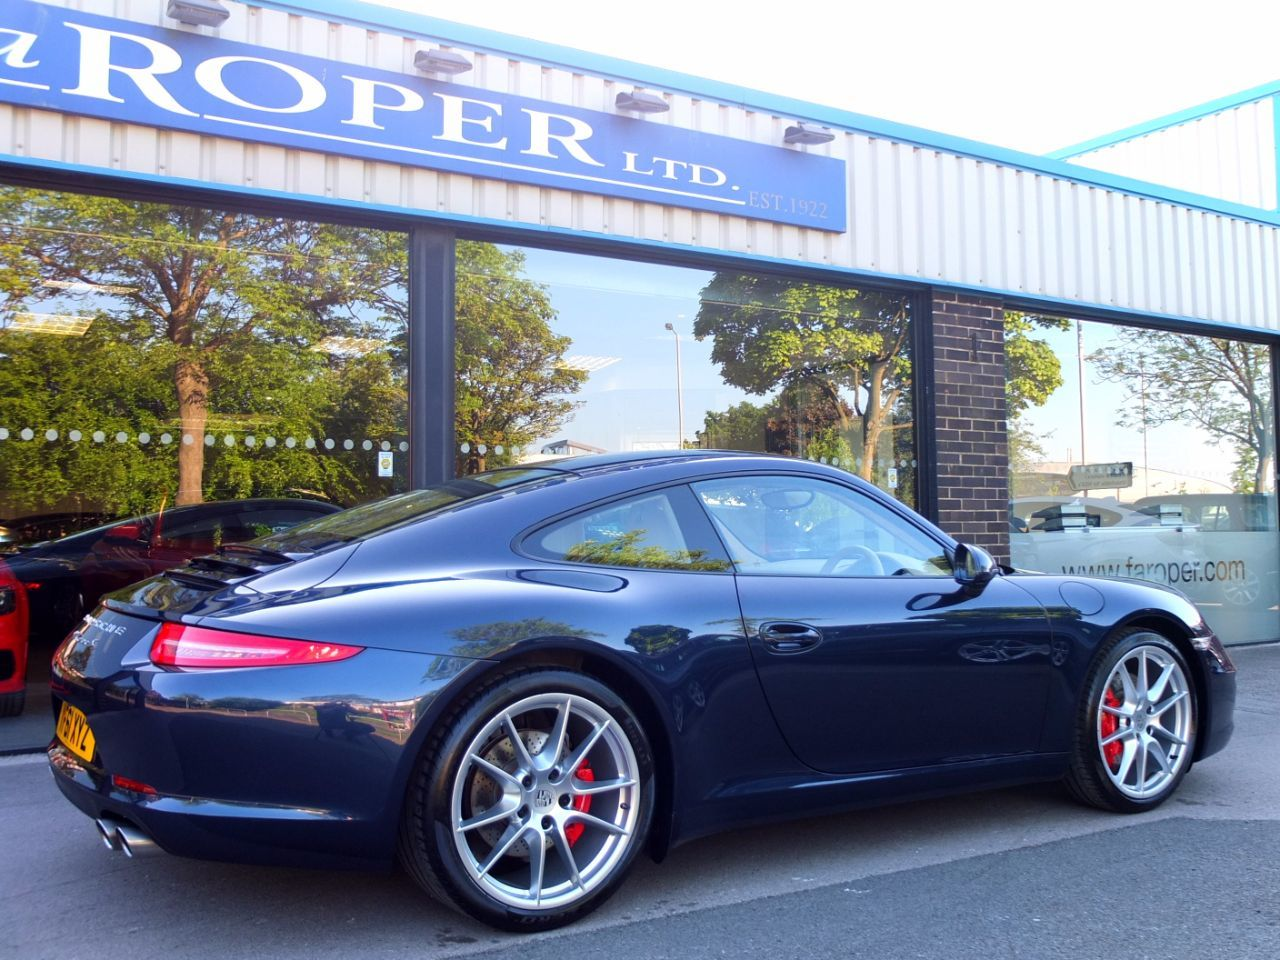 Porsche 911 991 Carrera 3.8 S Coupe Petrol Dark Blue Metallic